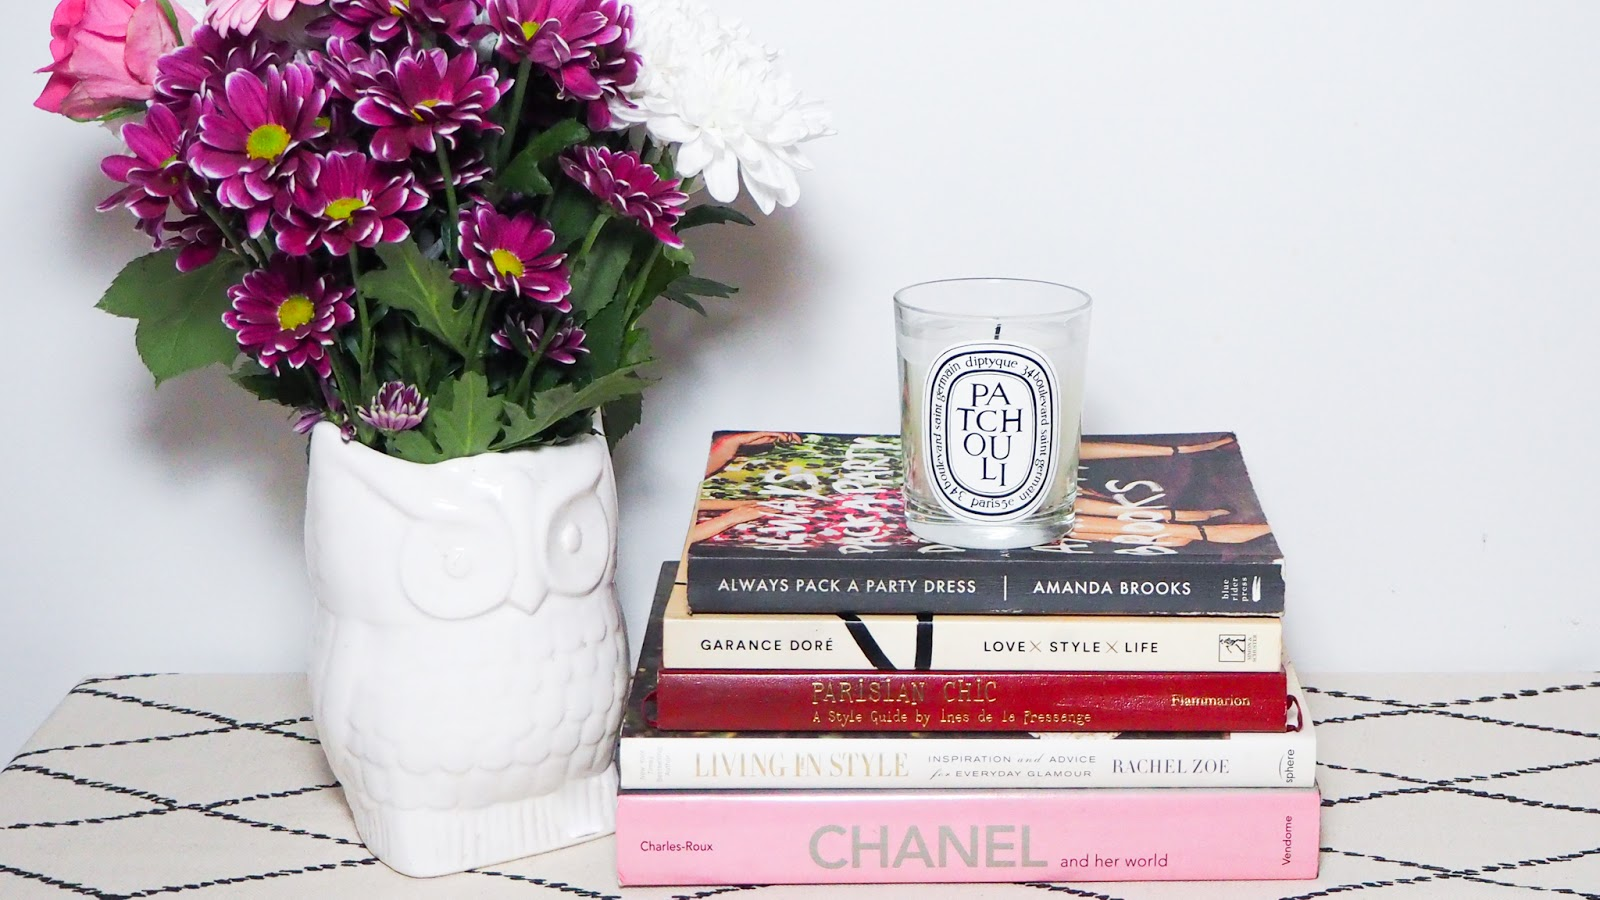 Diptyque Patchouli Candle with a vase of flowers and fashion books